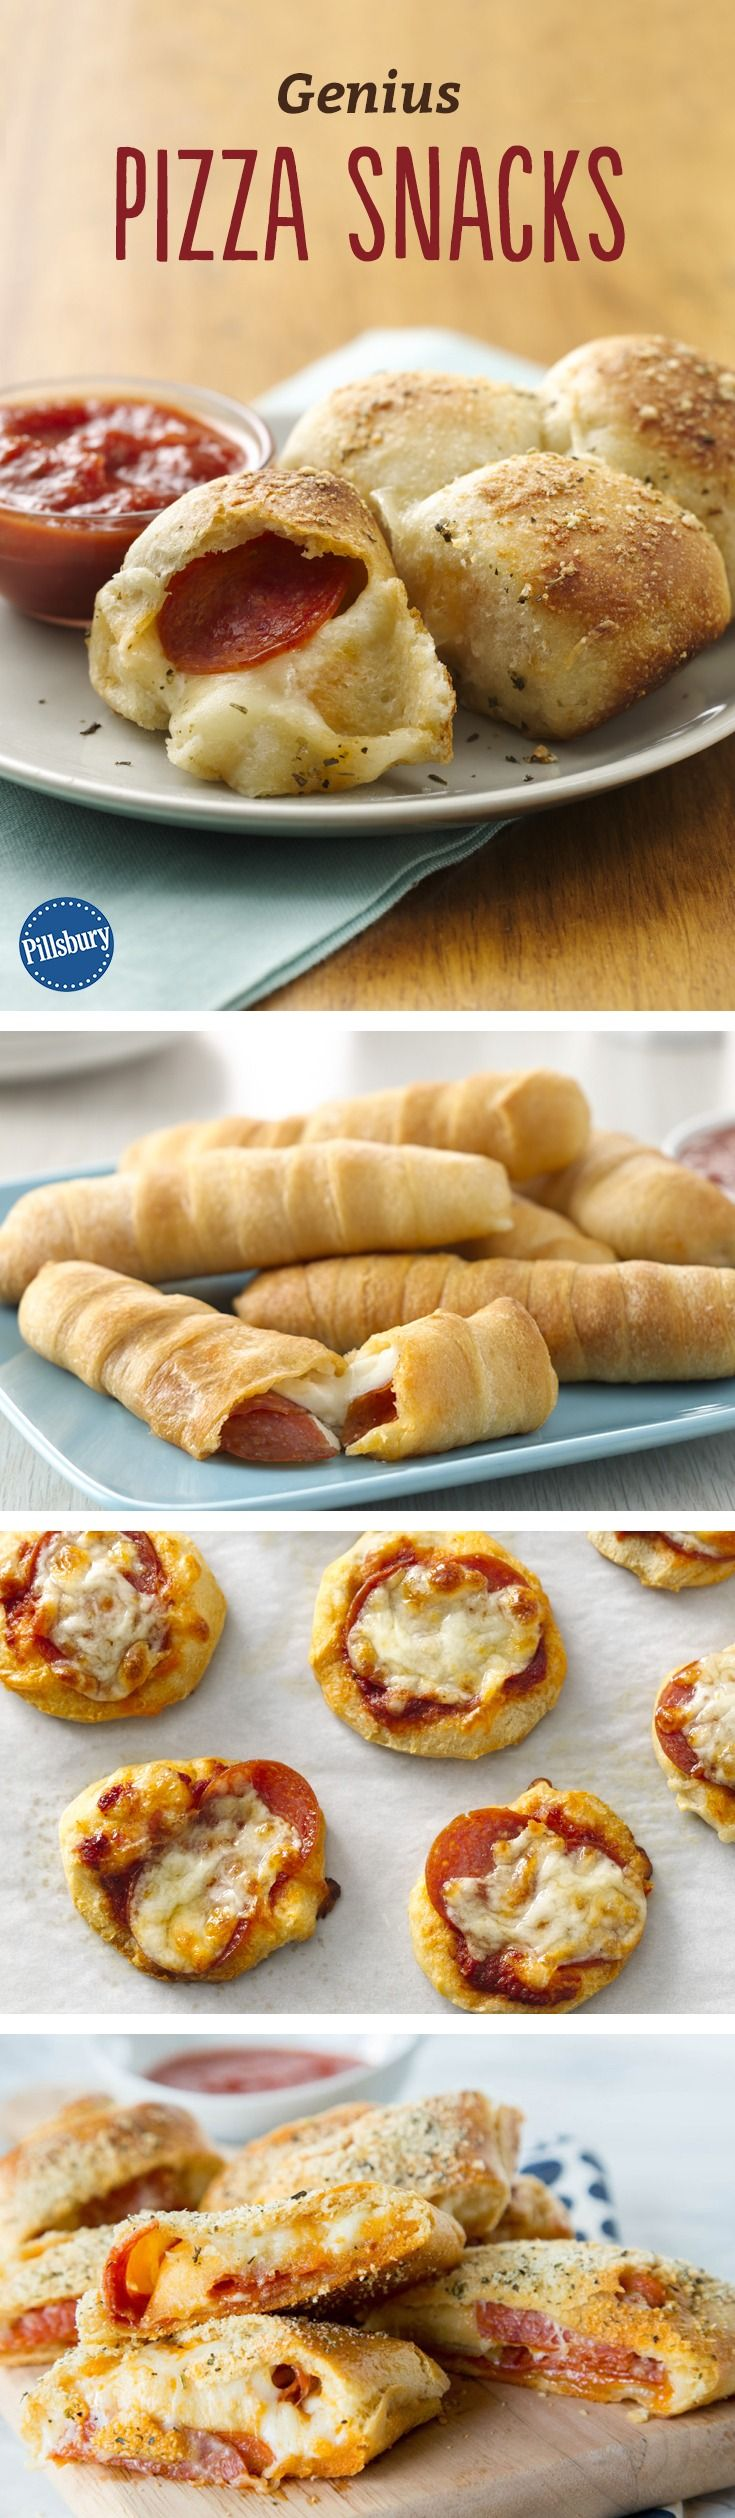 Genius Pizza Snacks - Why wait until dinner? These cheesy, bite-sized eats are perfect for getting your pizza fix.